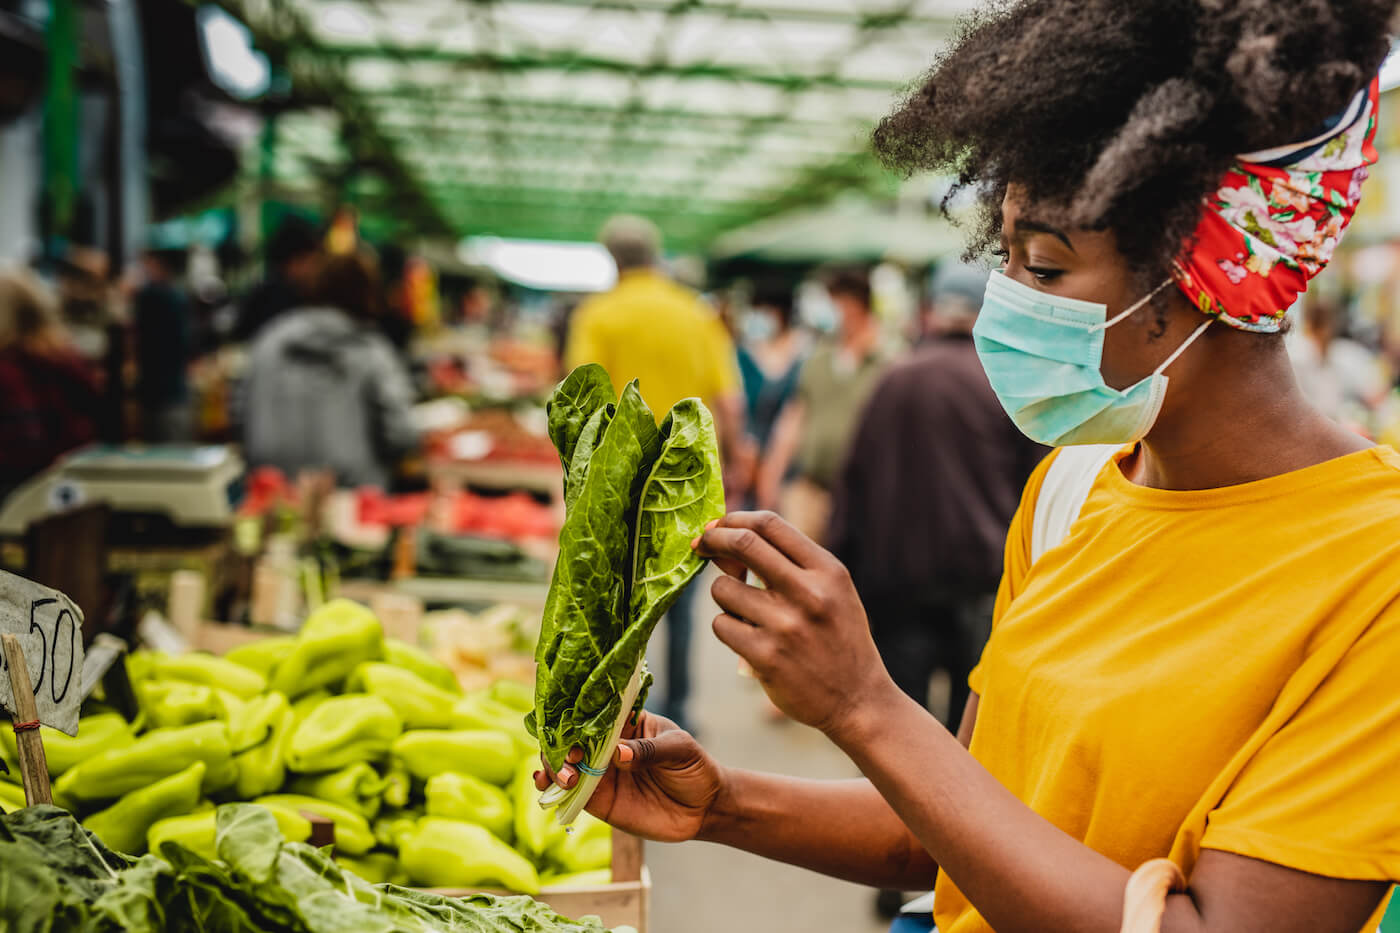 Young african american woman with face mask inspecting kale at farmers market